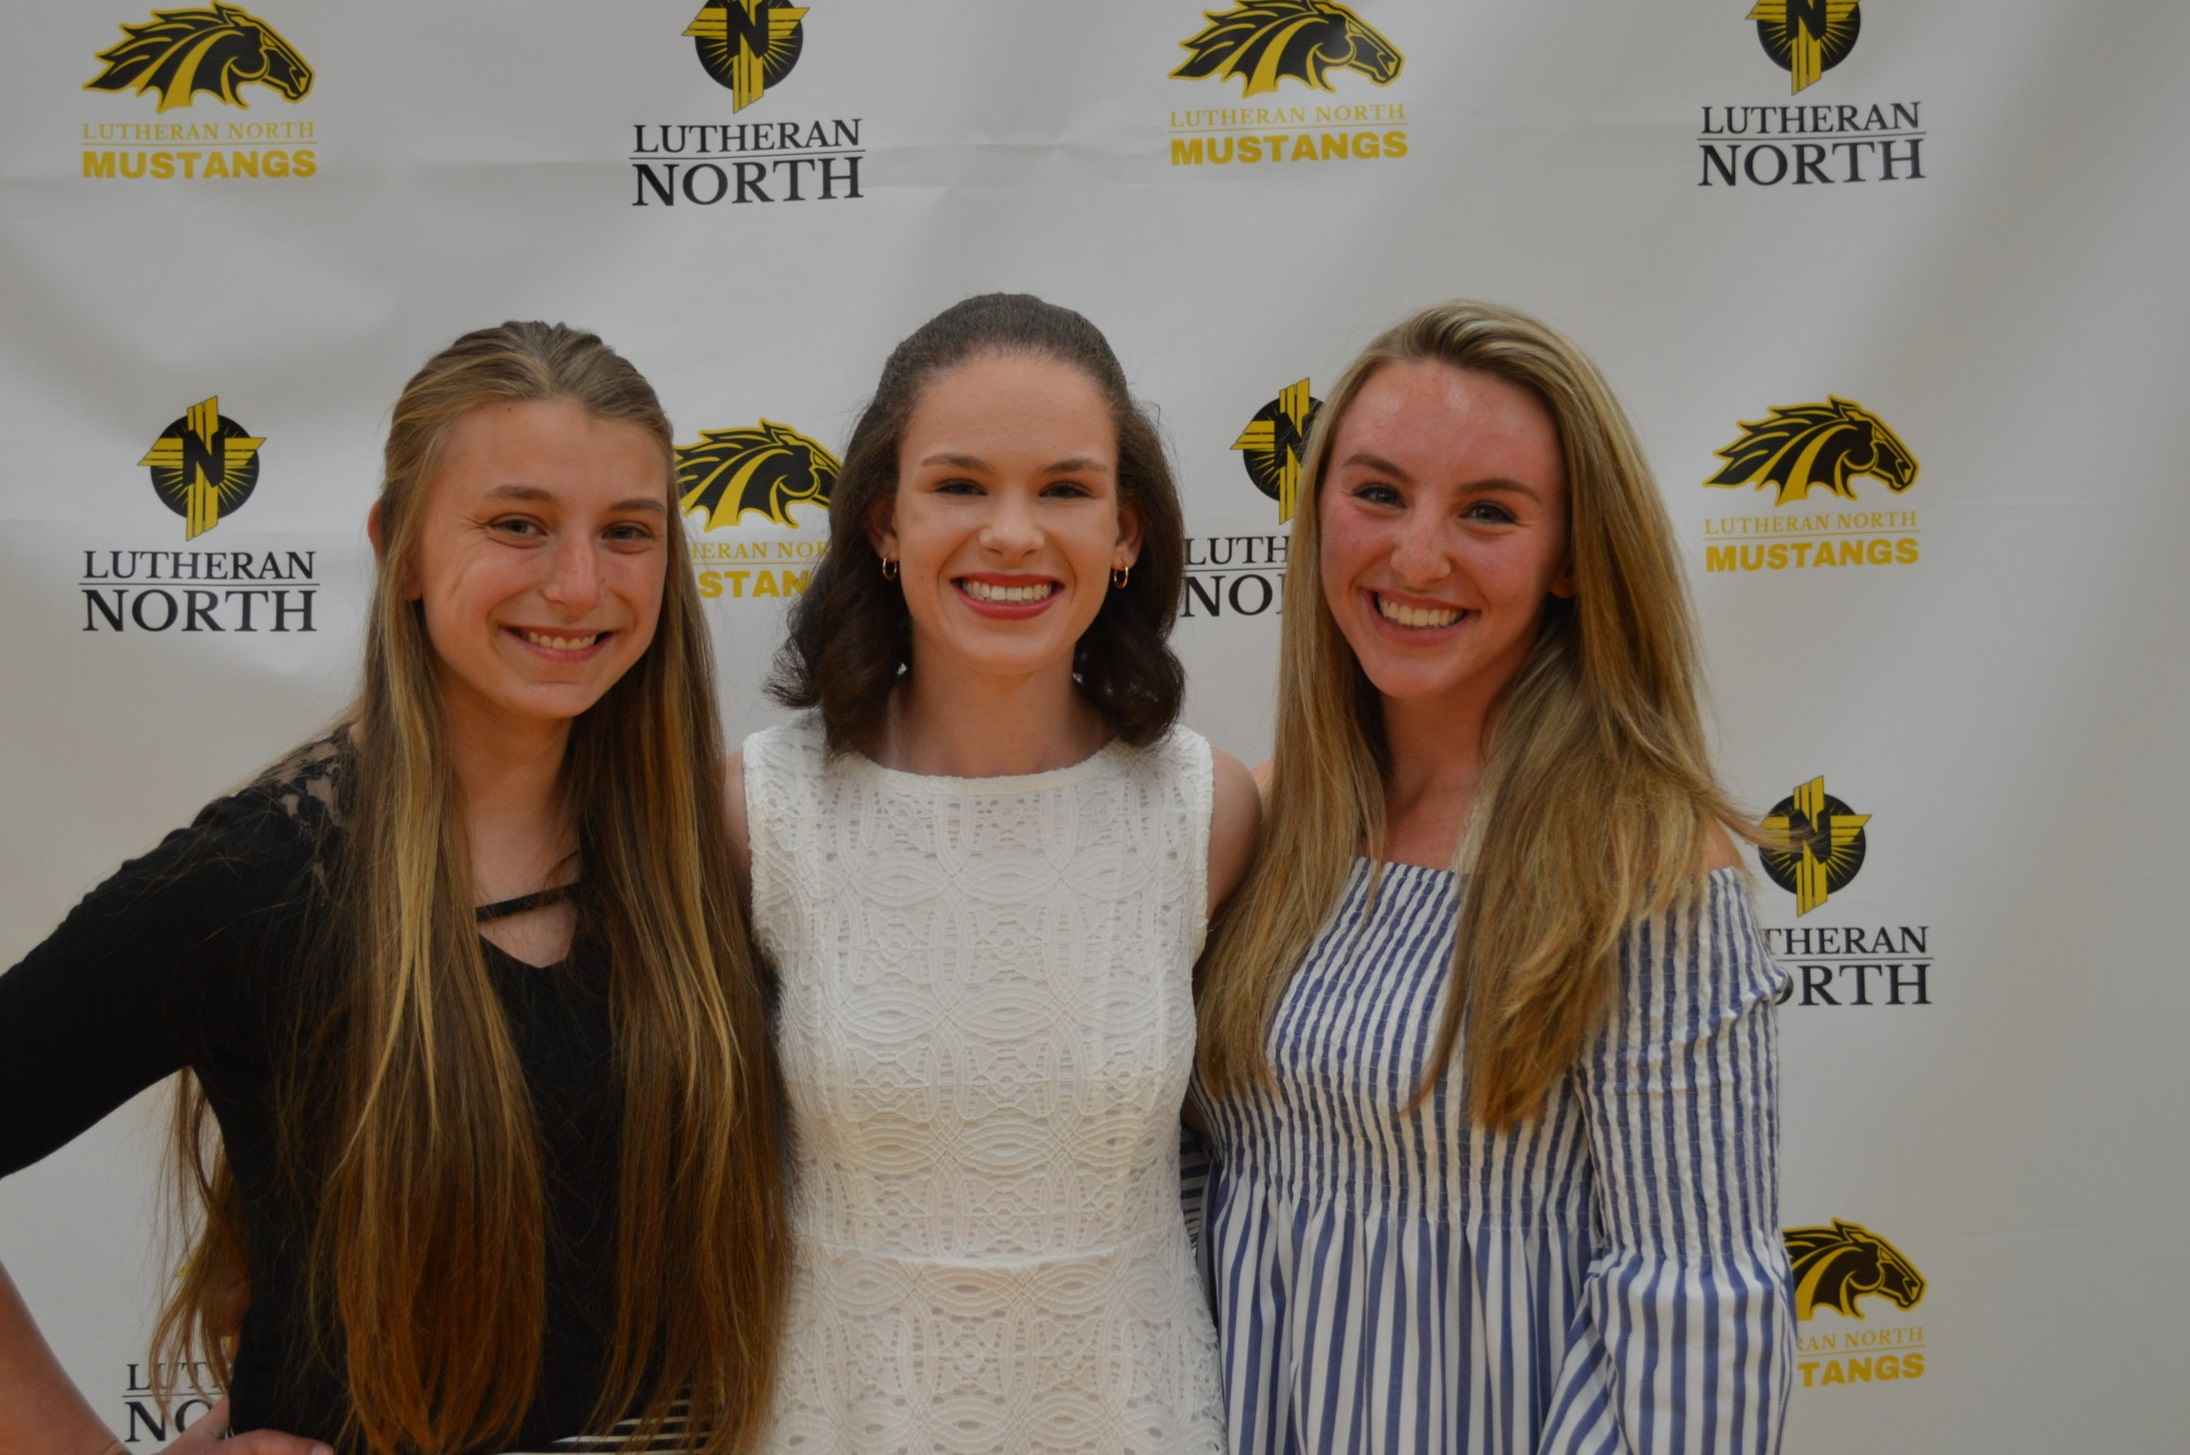 - This year Lutheran North is blessed to have three gifted young ladies representing academic excellence! Congratulations to Valedictorian Karli Monahan and Co-Salutatorians Hannah Ebel, as well as Salutatorian Lillian Martin.